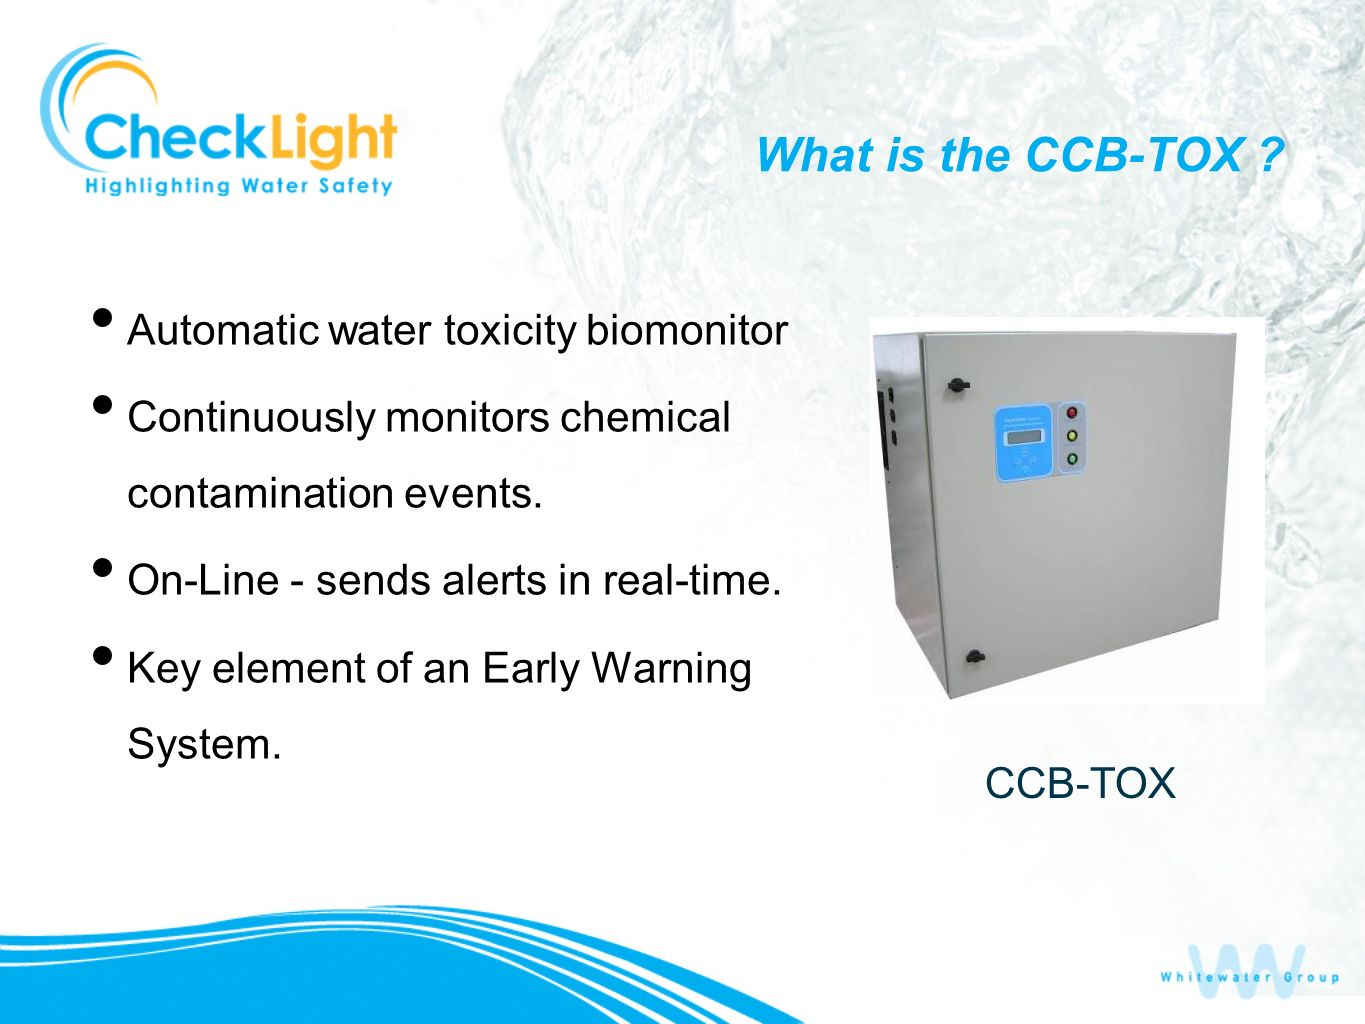 What is the CCB-TOX Automatic water toxicity biomonitor